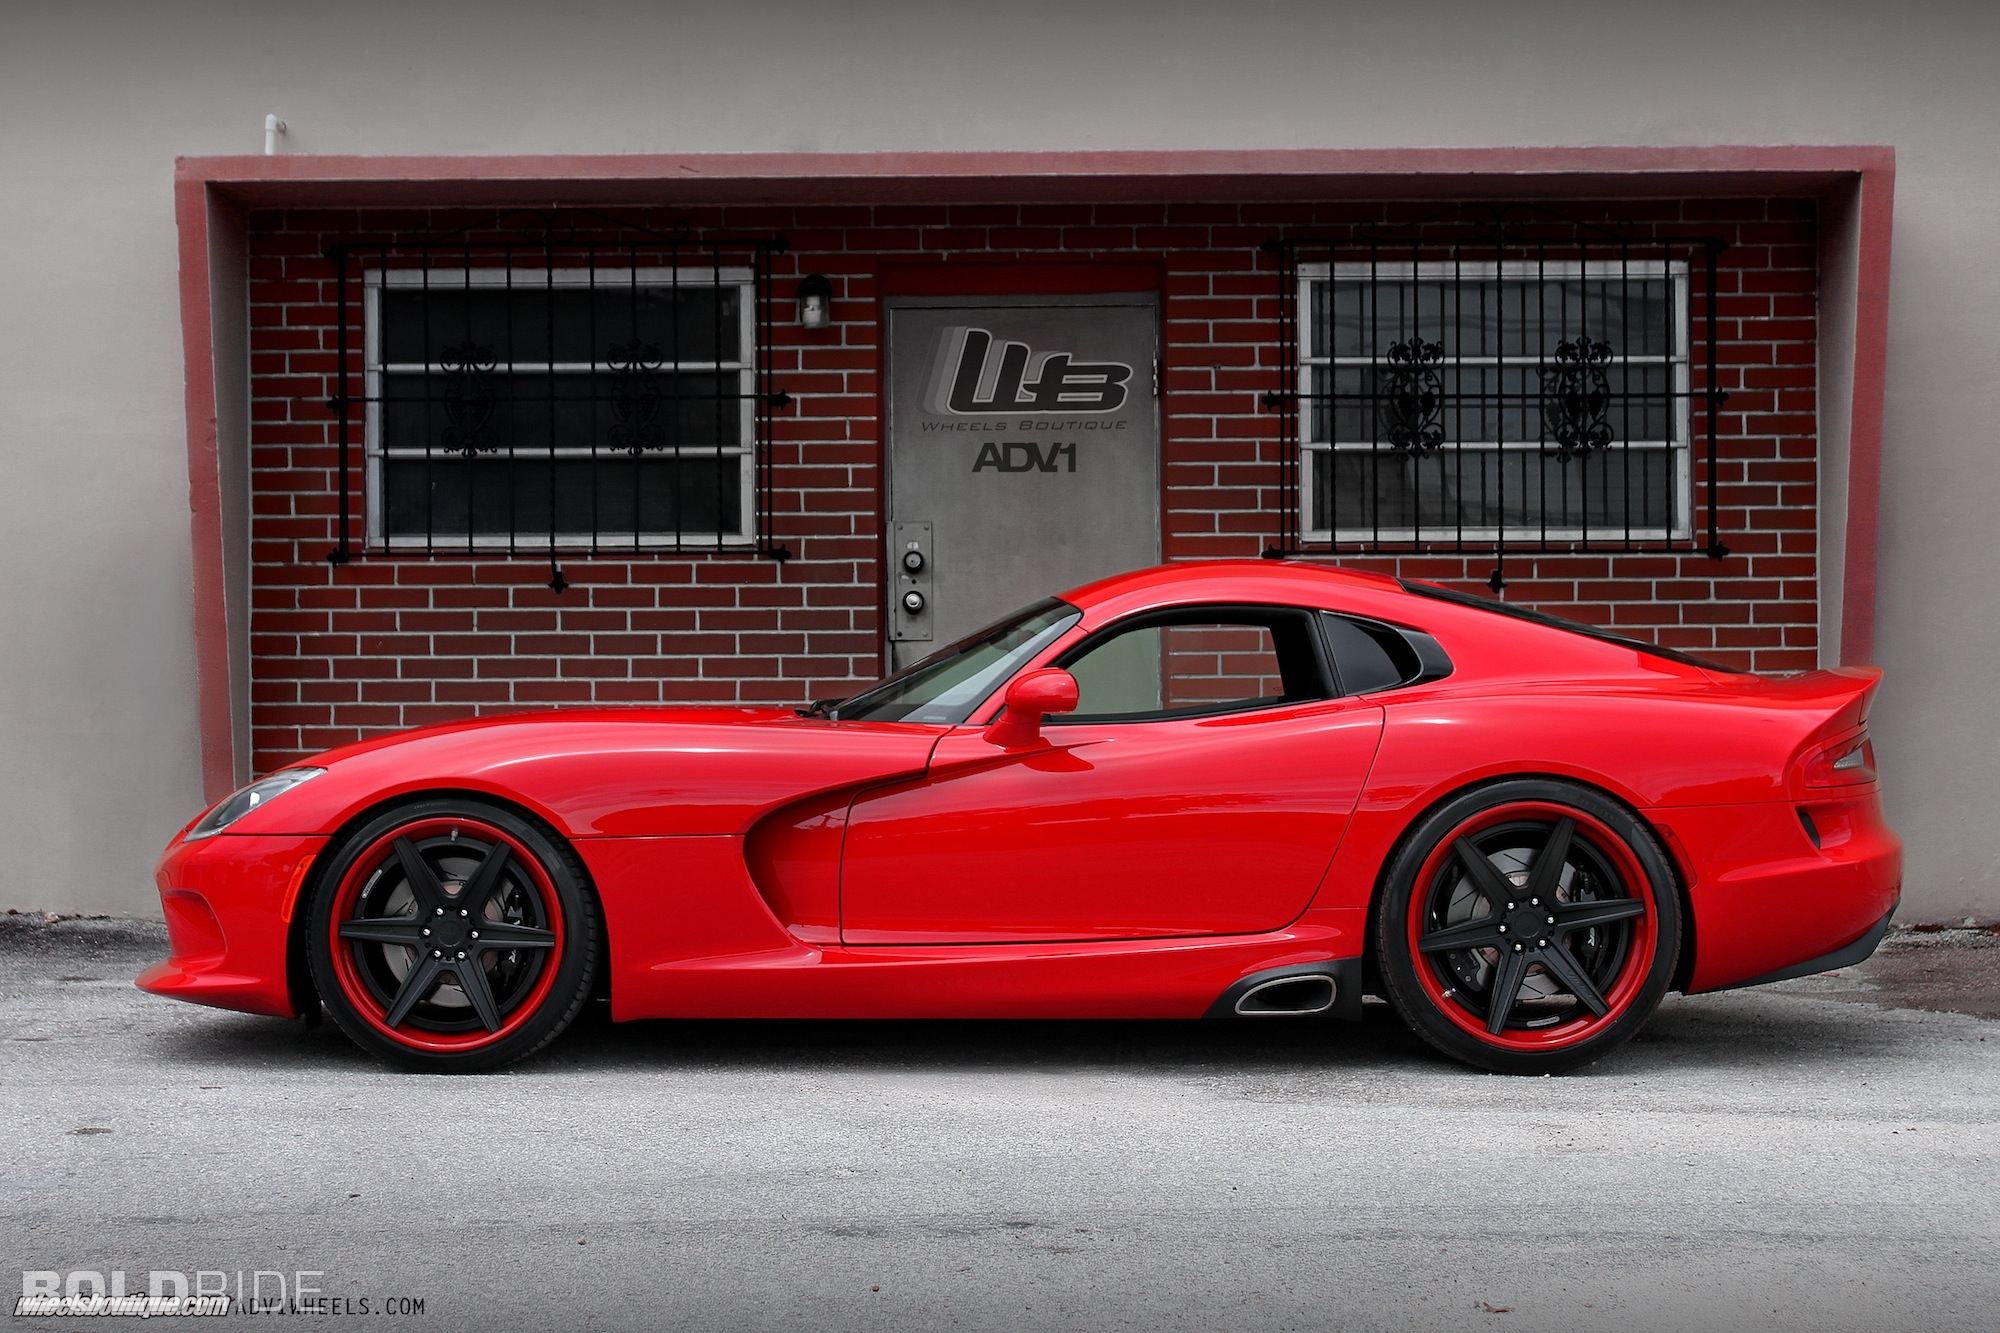 2013 Wheels Boutique SRT Viper 1920 x 1080